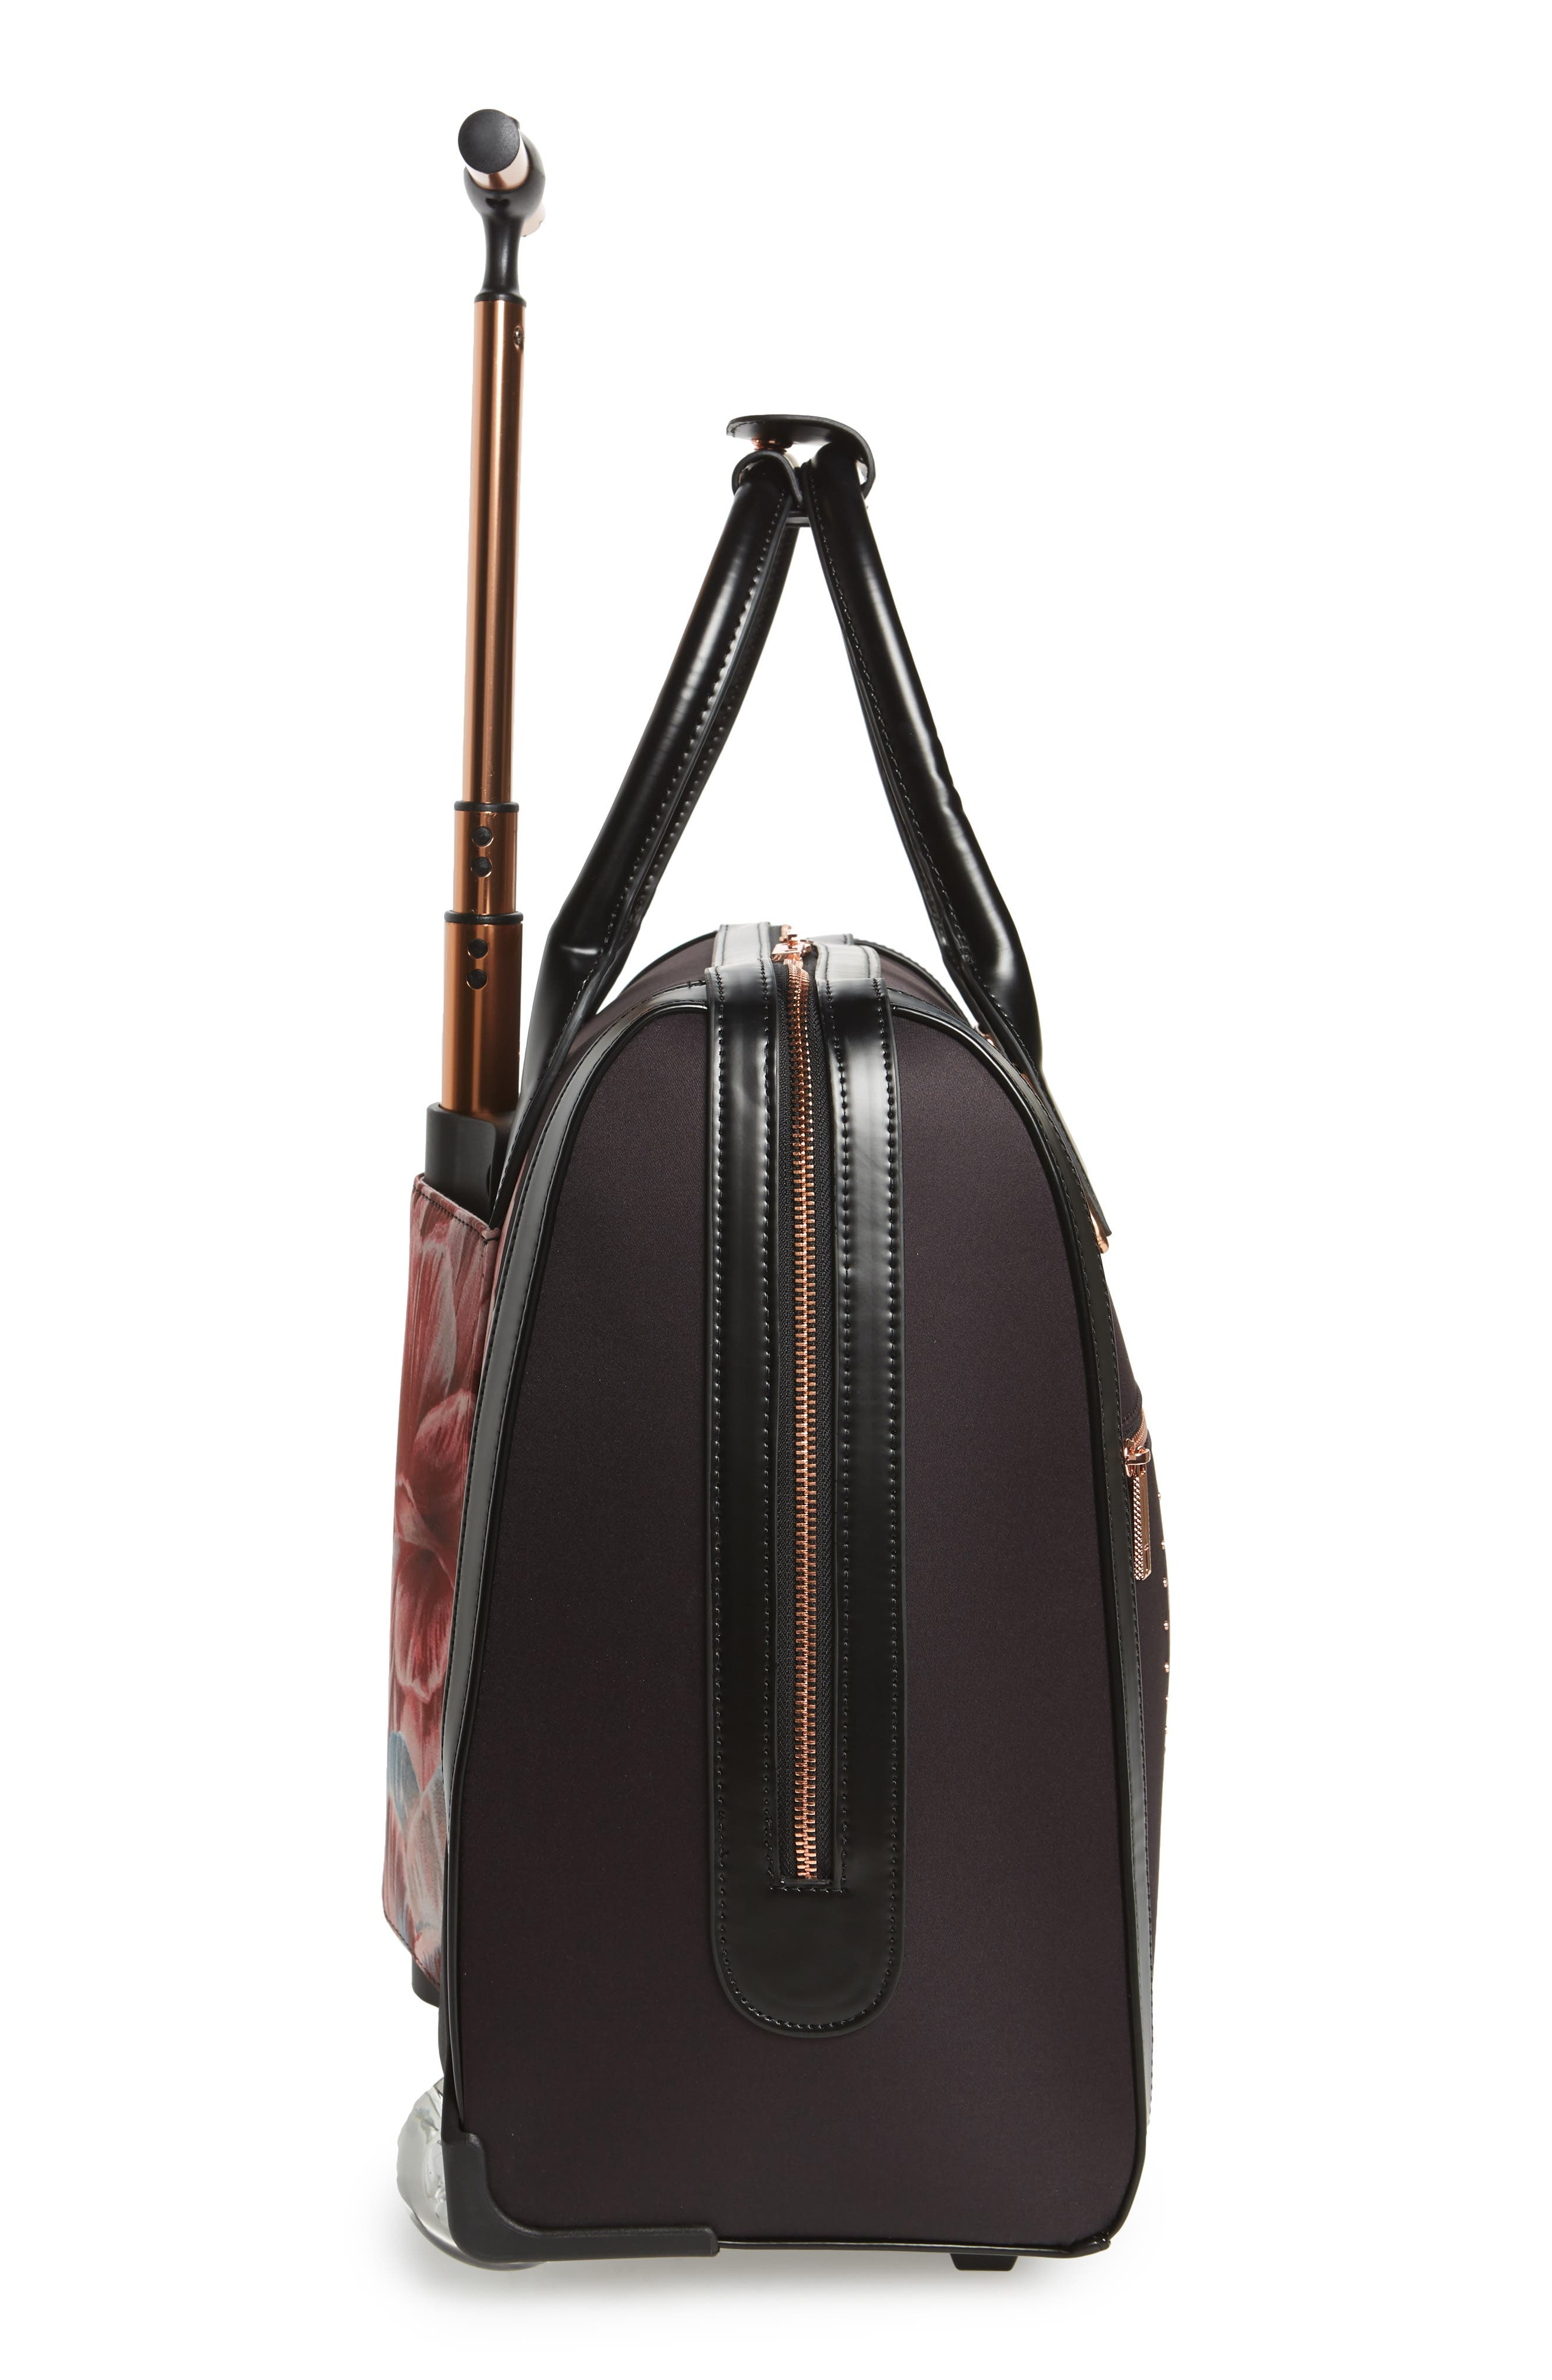 Tranquility Rolling Faux Leather Travel Bag,                             Alternate thumbnail 3, color,                             001